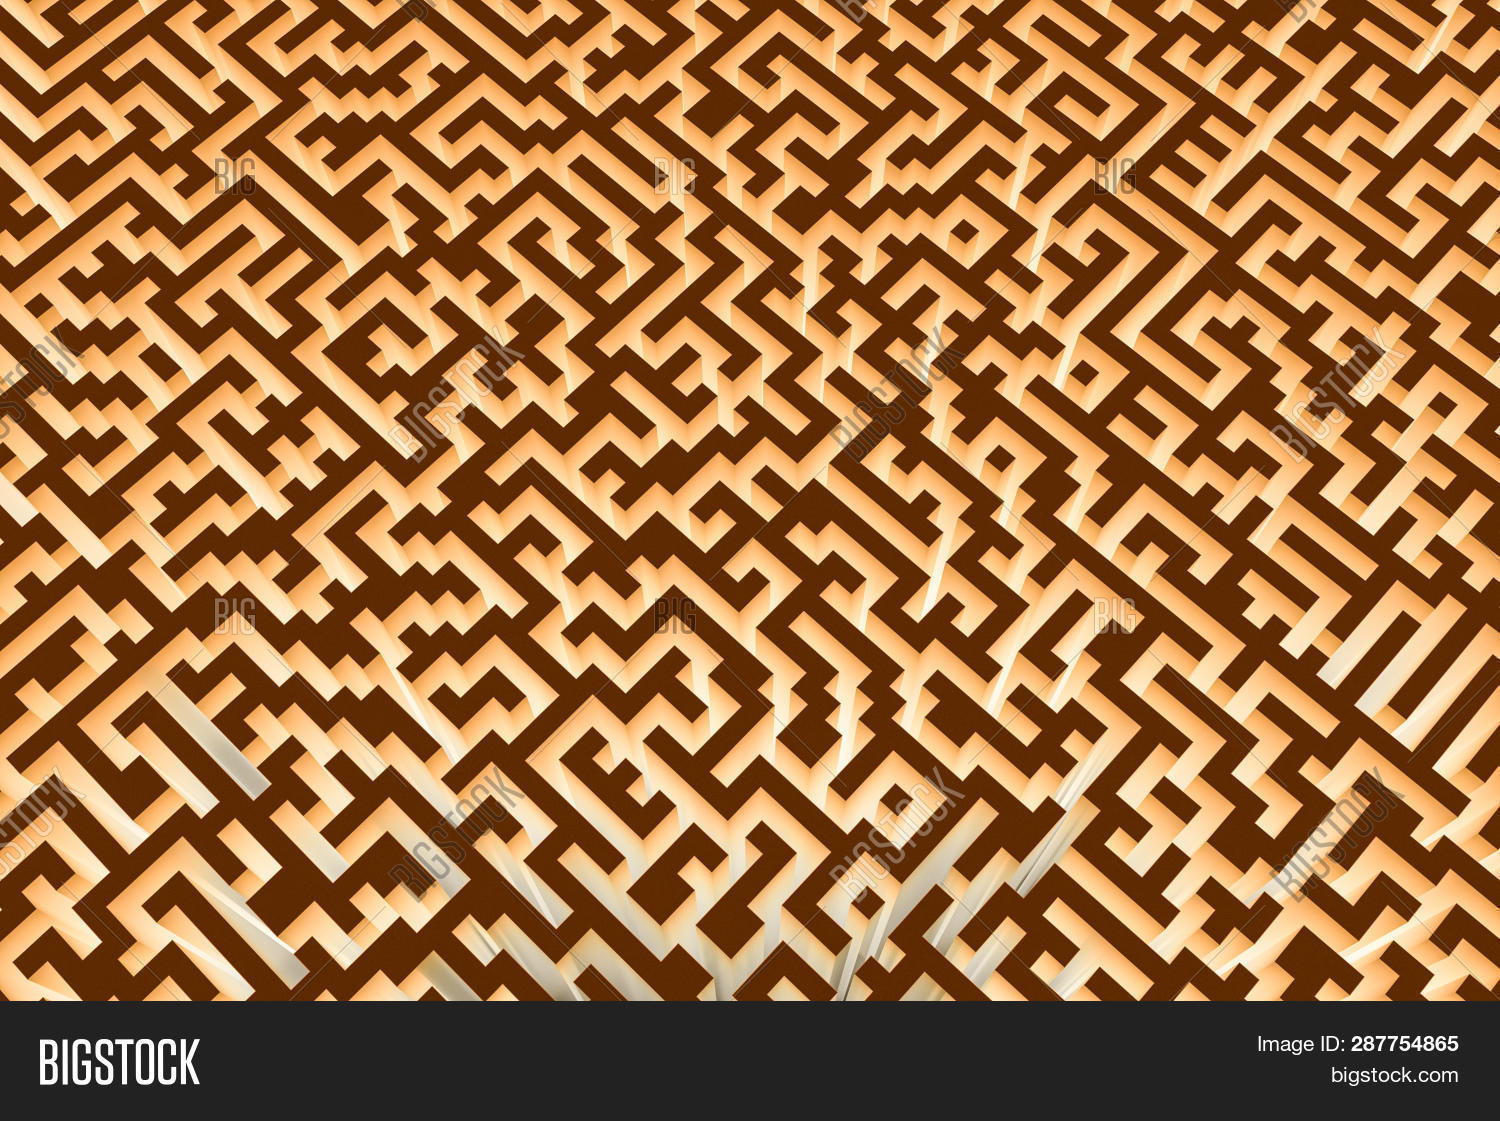 The Texture Of The Three-dimensional Model Of The Glowing Maze, Perspective View. Three-dimensional